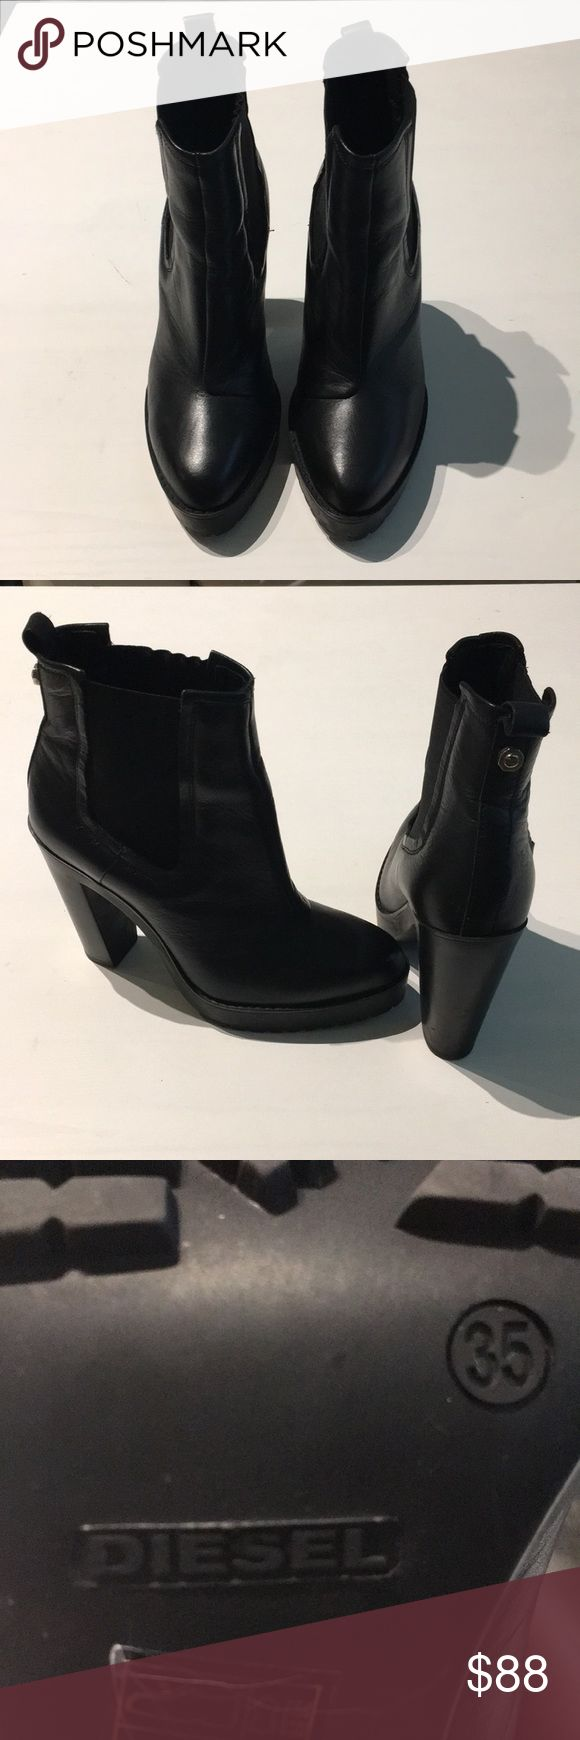 Diesel Black Leather Ankle Boots - Size 35 Stylish and comfortable black leather boots from Diesel. Prefect for Fall/Winter, even early Spring outfits. Excellent condition. Diesel Shoes Ankle Boots & Booties